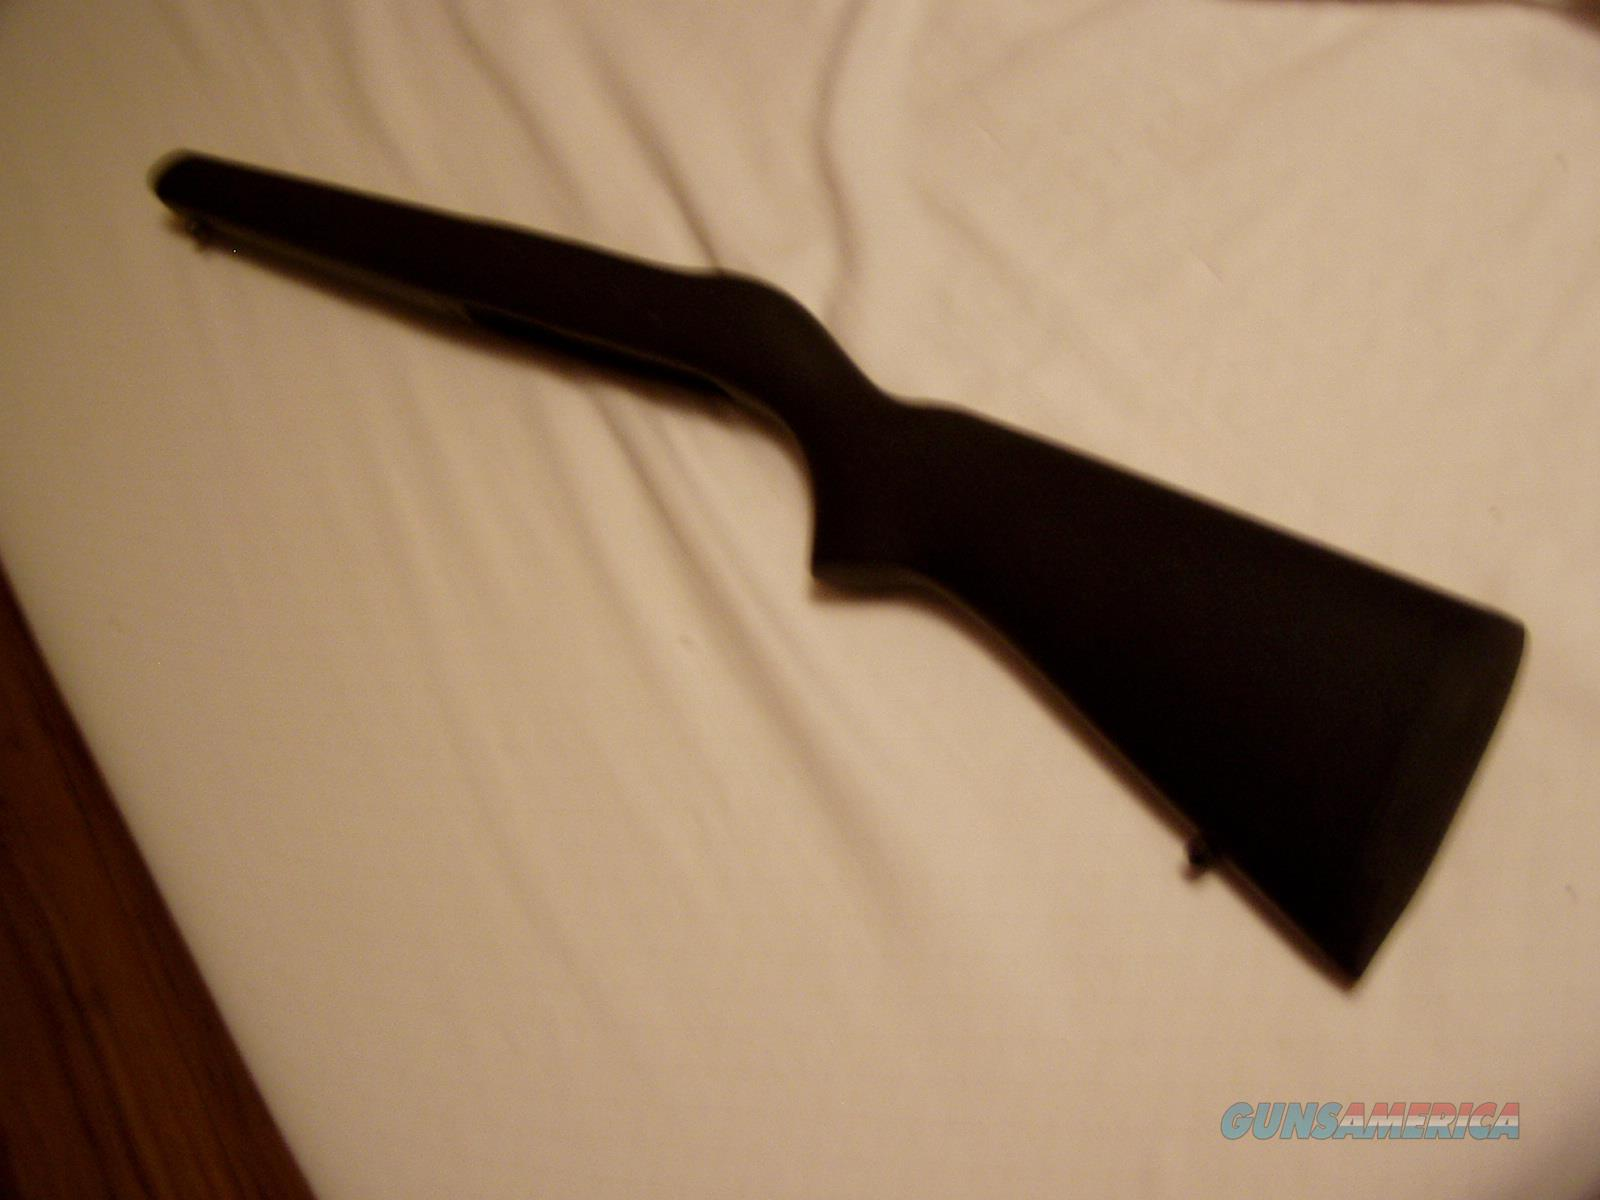 BELL & CARLSON SYN.  BLACK STOCK WITH  BELL & CARLSON  MARKED BUTT PAD FOR RUGER 10-22 WITH OUT LAST SHOT HOLD OPEN FEATURE  EXCELLENT CONDITION $ 79.00   Non-Guns > Gunstocks, Grips & Wood